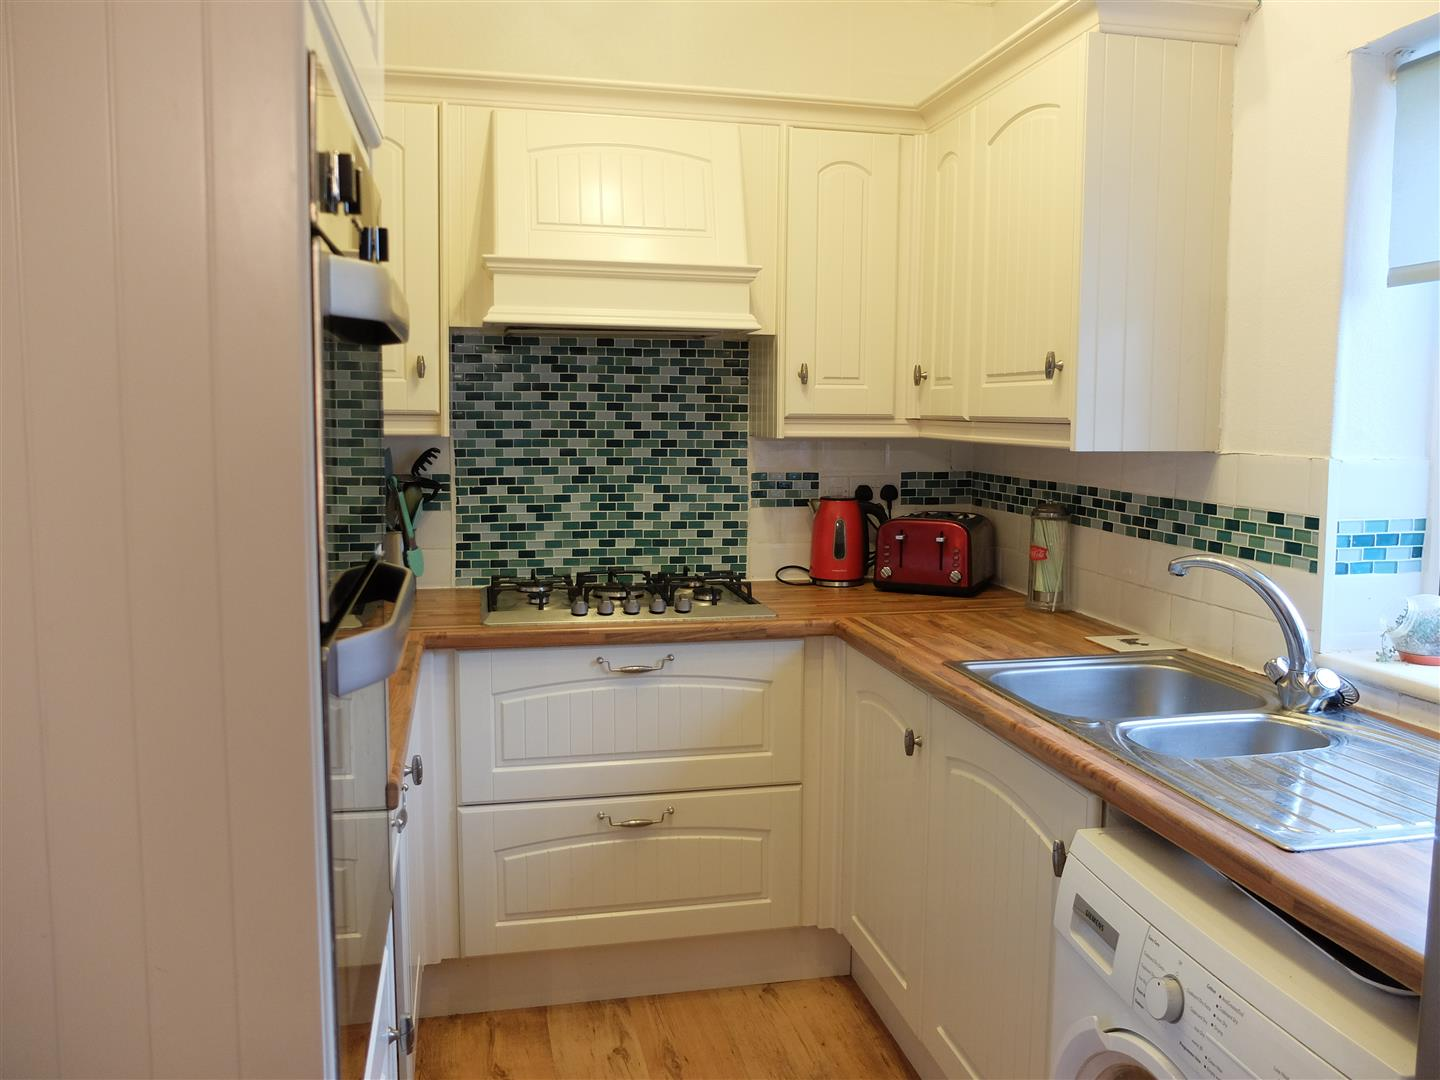 3 Bedrooms House - Semi-Detached On Sale 12 Newlands Road Carlisle